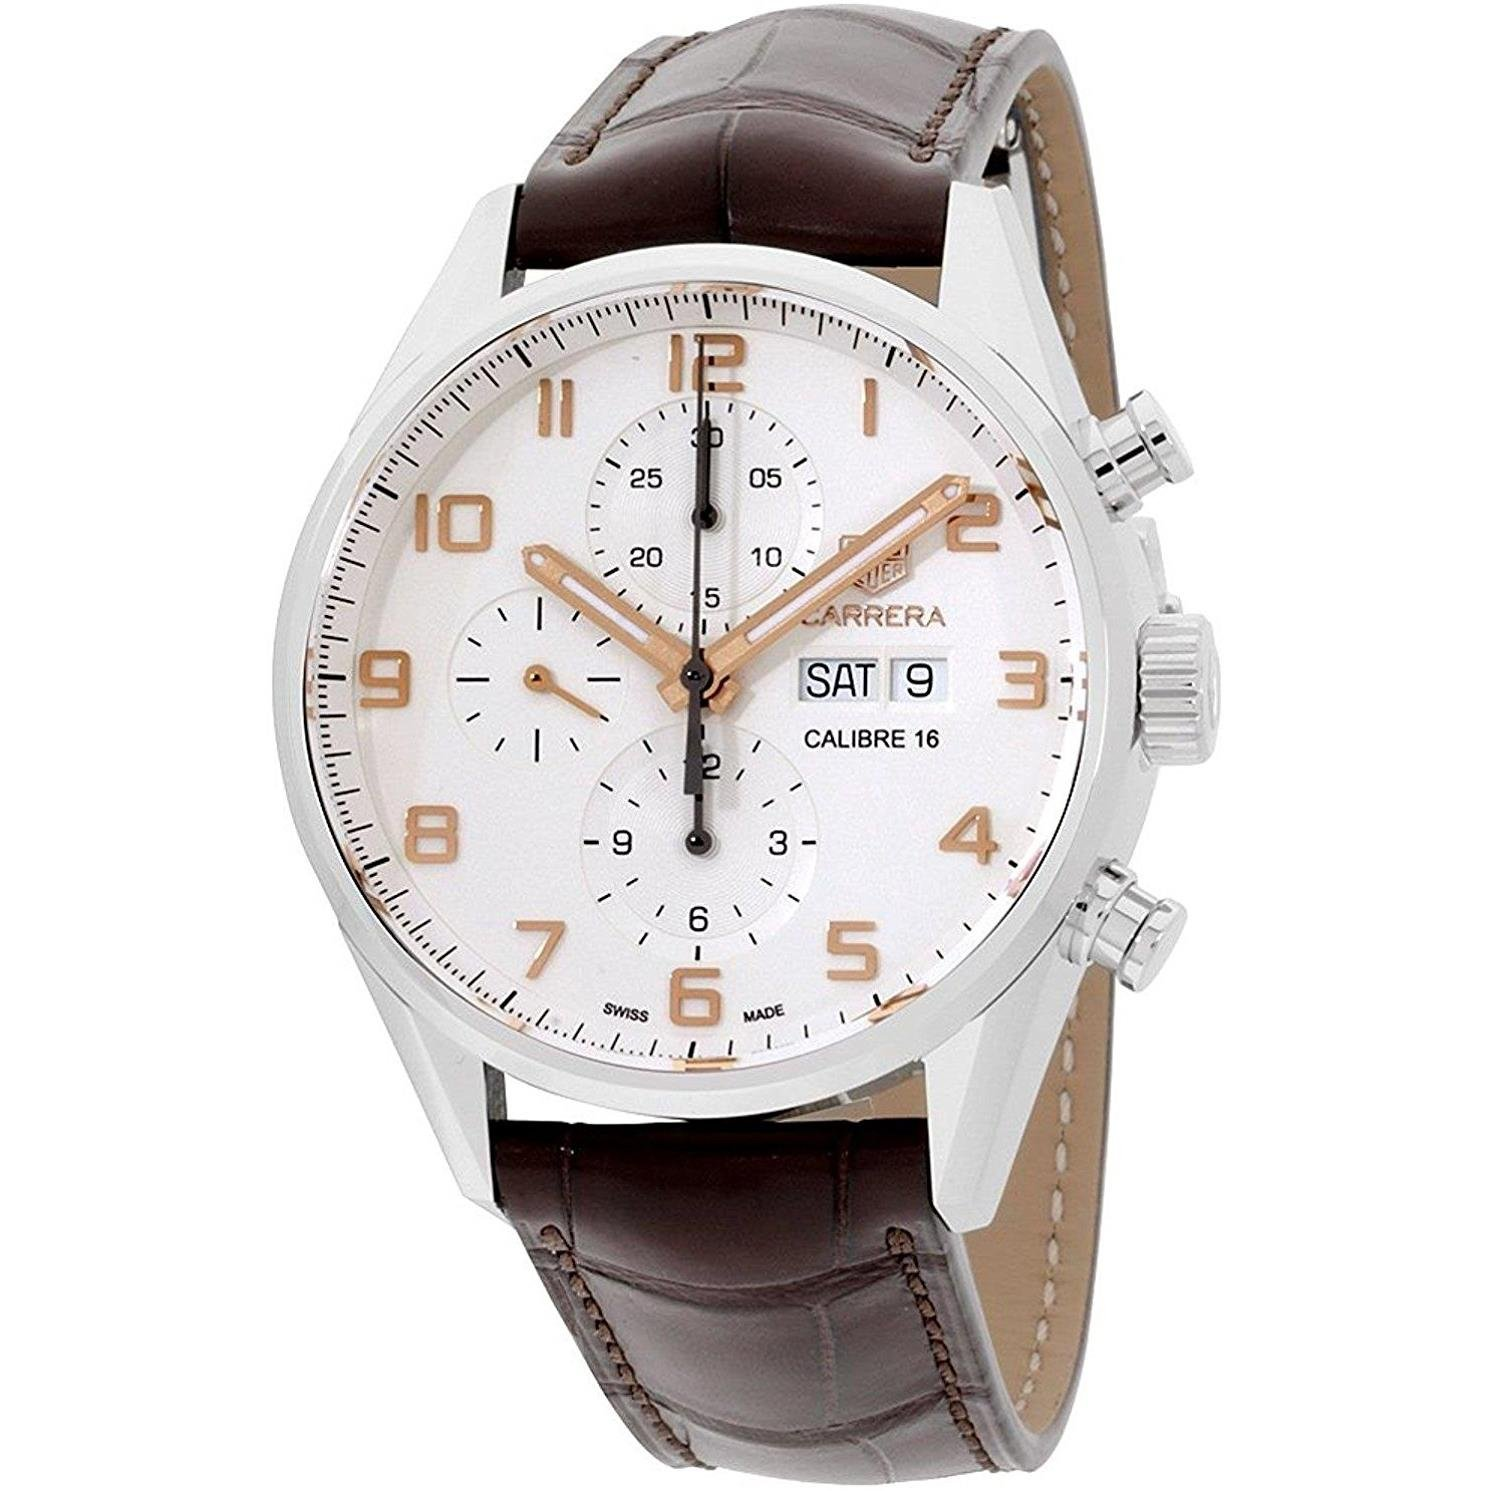 92fd297266e Amazon.com  Tag Heuer Carrera White Dial Brown Leather Strap Men s Watch  CV2A1AC.FC6380  TAG Heuer  Watches